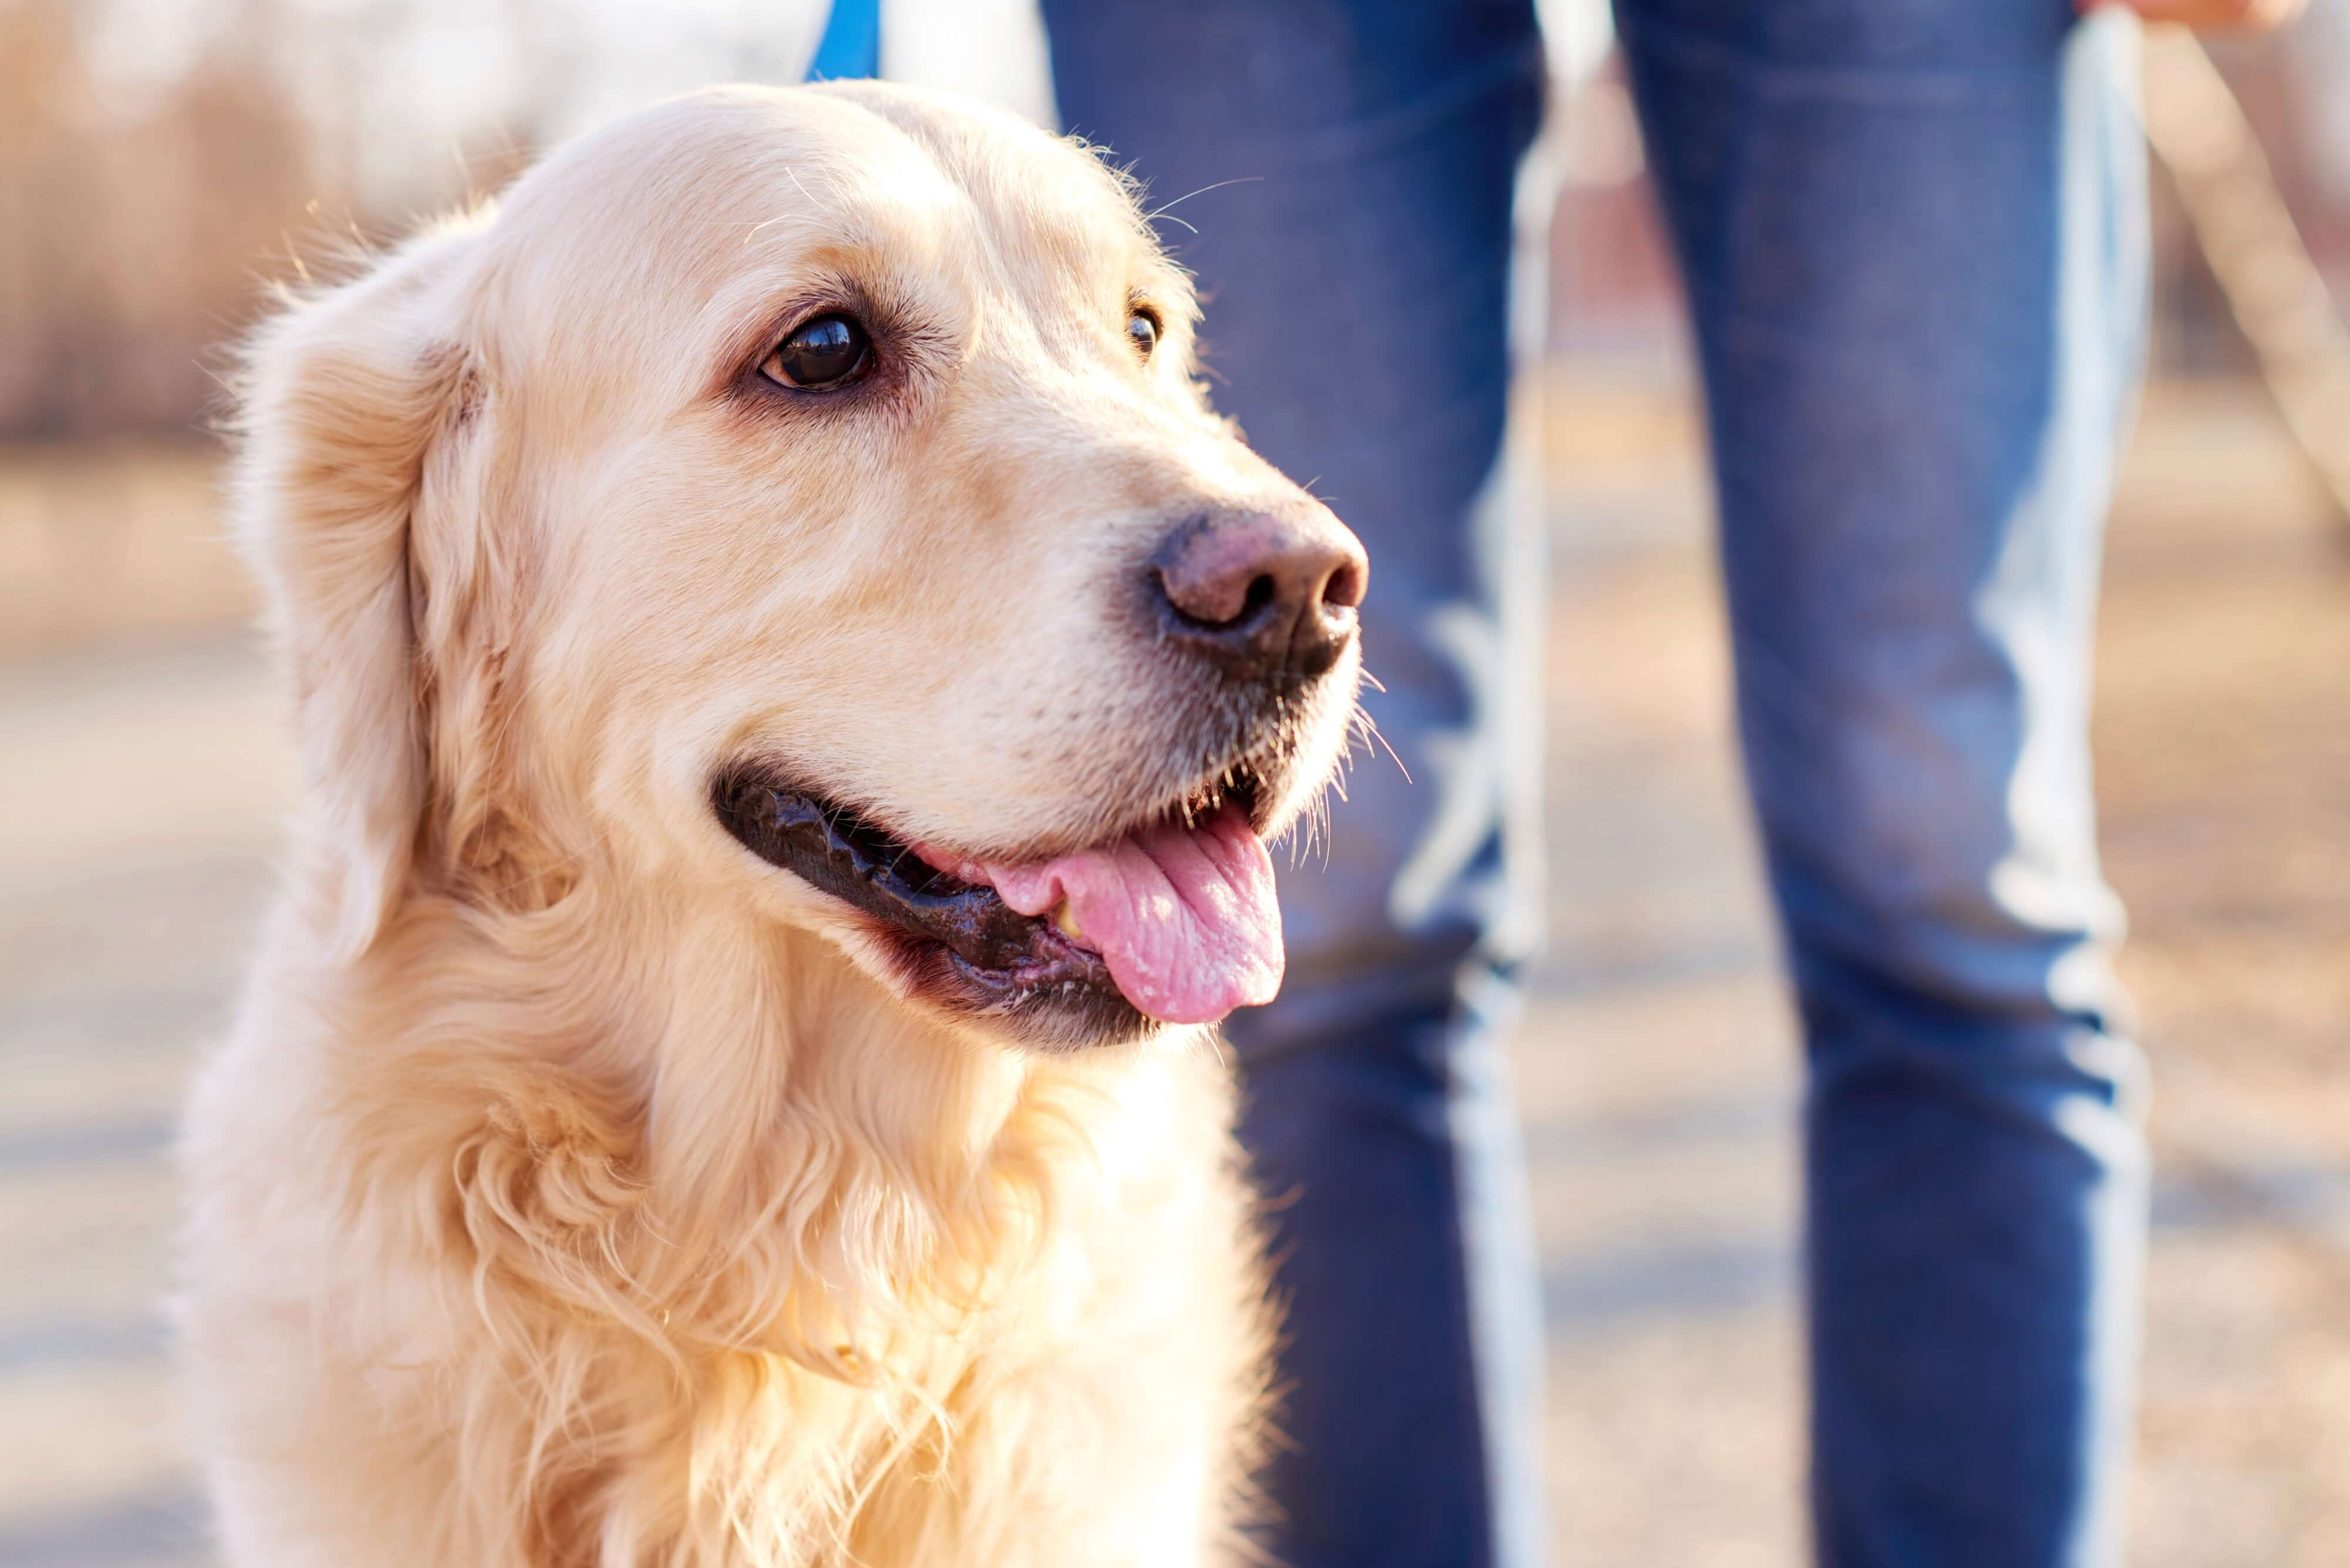 Take a Veterinarian's Advice to Prevent Hair Loss in Your Pet!